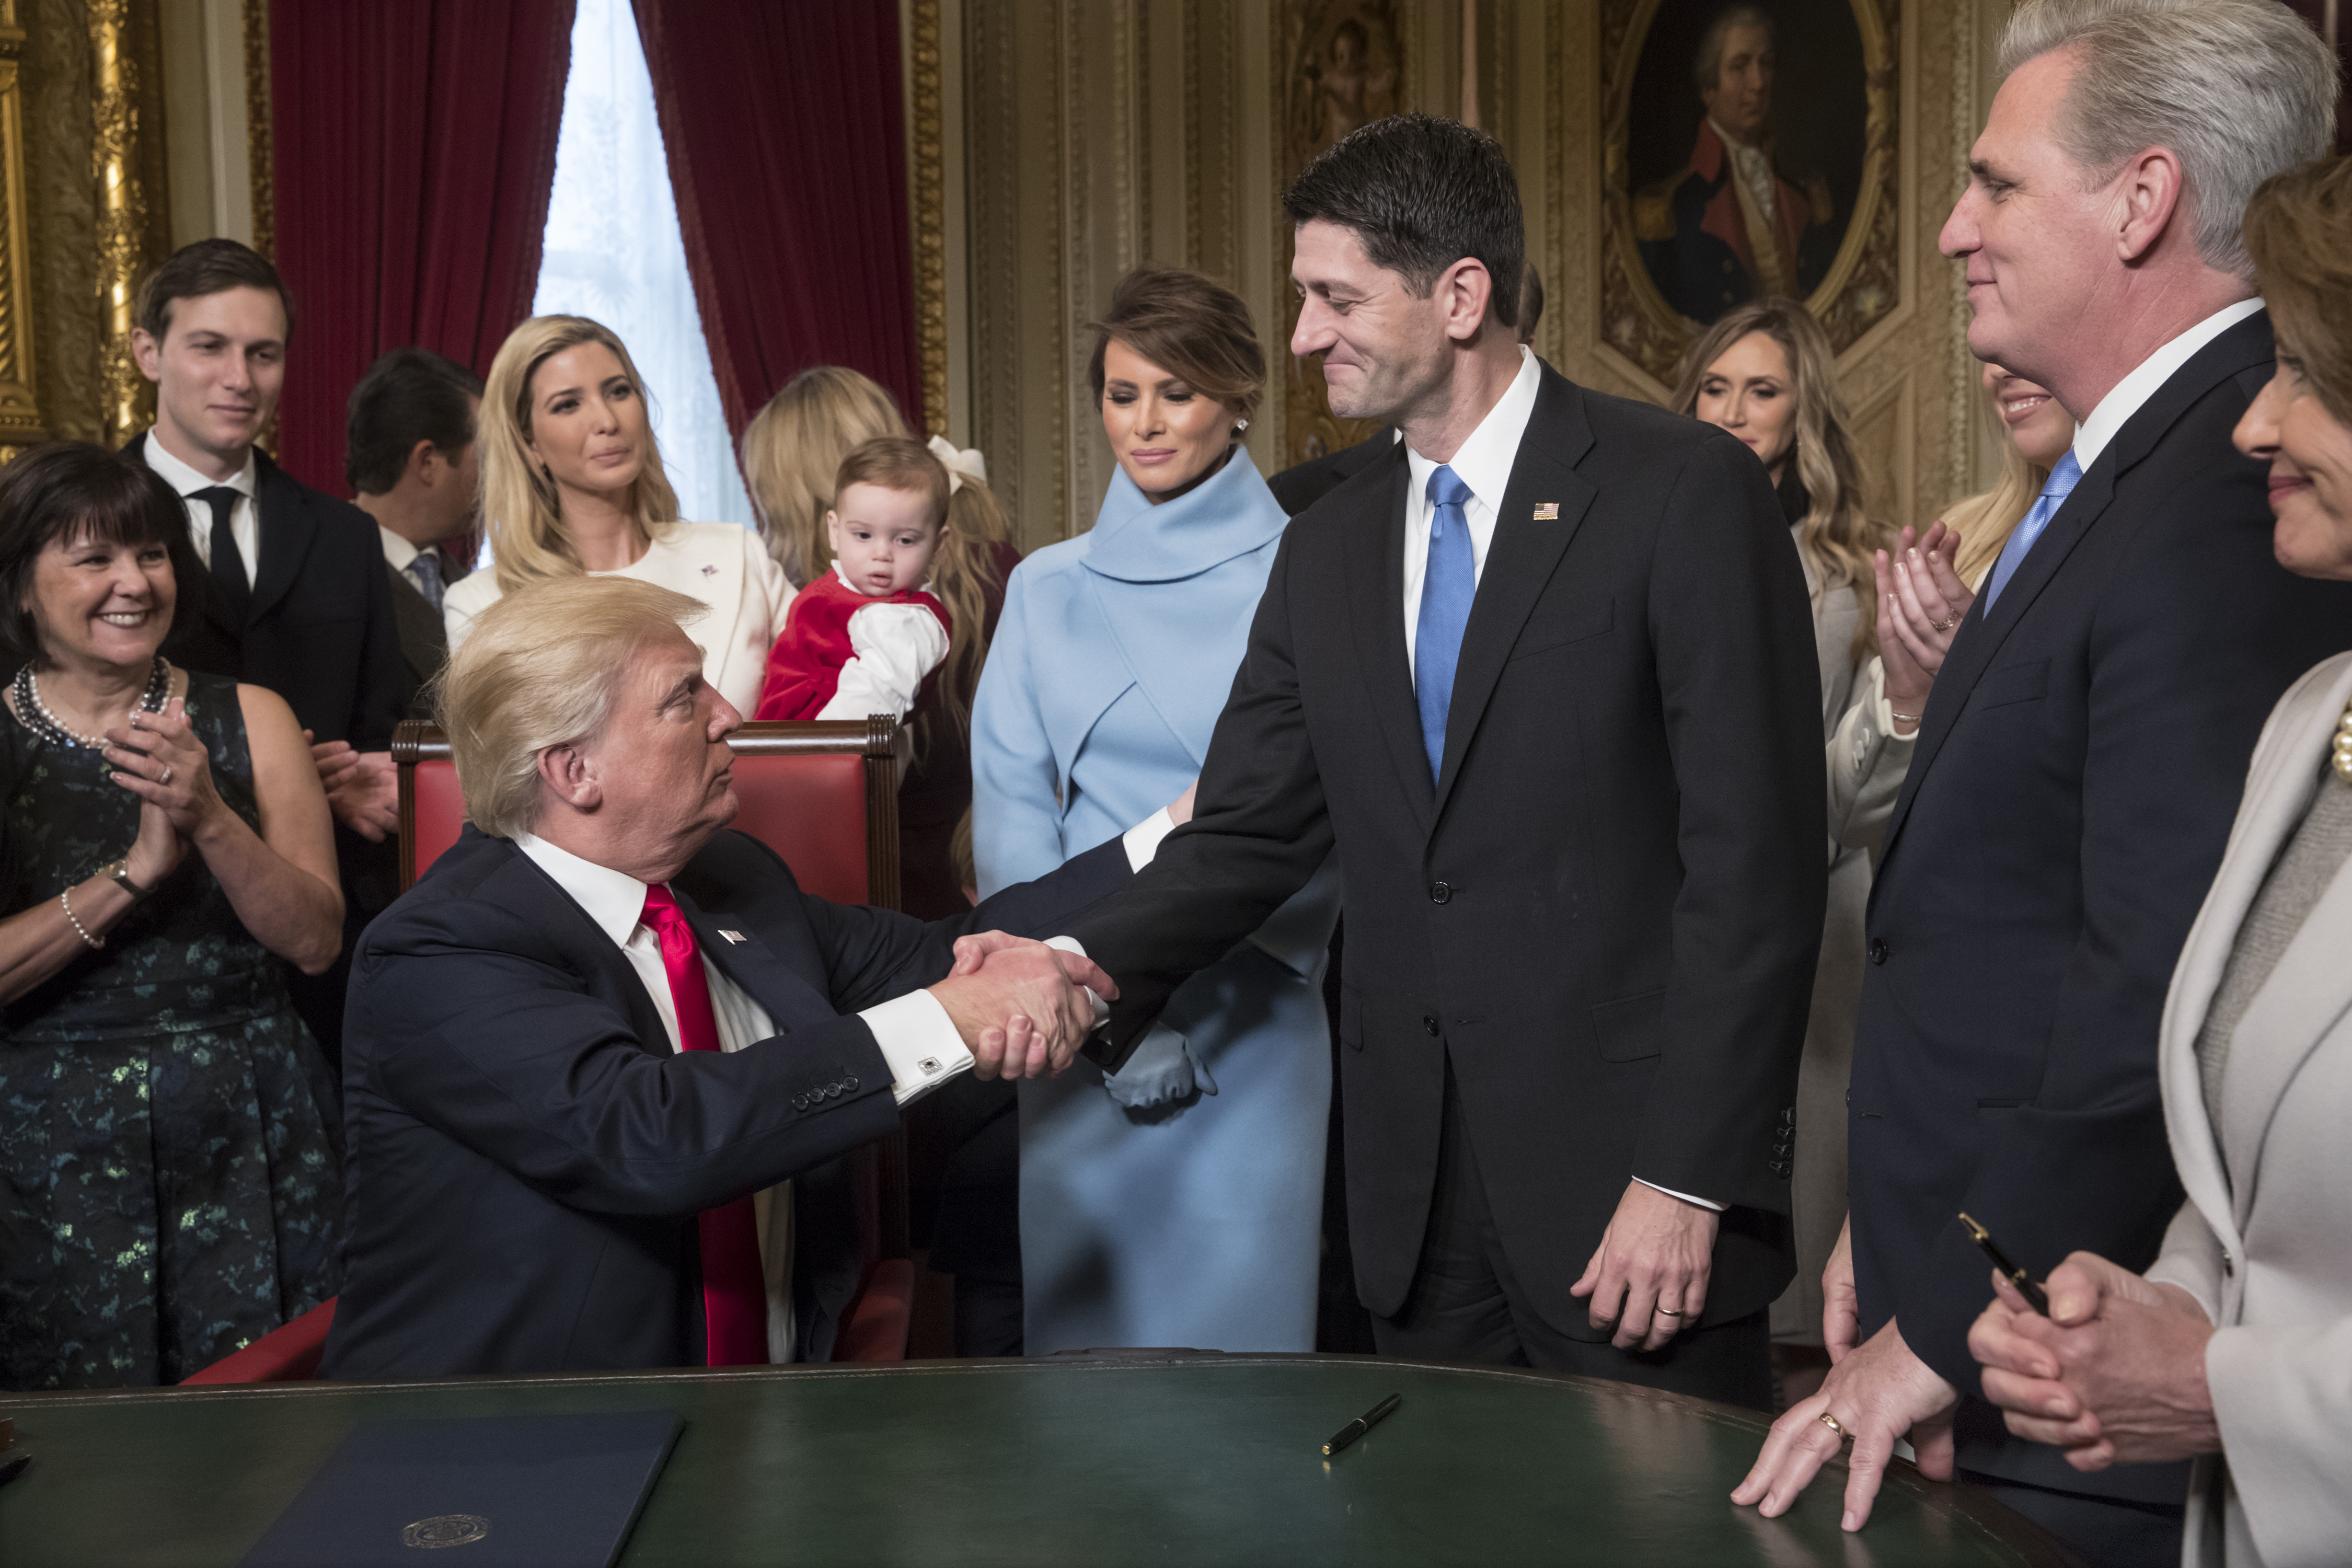 The house just passed a sweeping abortion funding ban heres what it does vox - Paul Ryan Used To Love Tpp Then Came Donald Trump